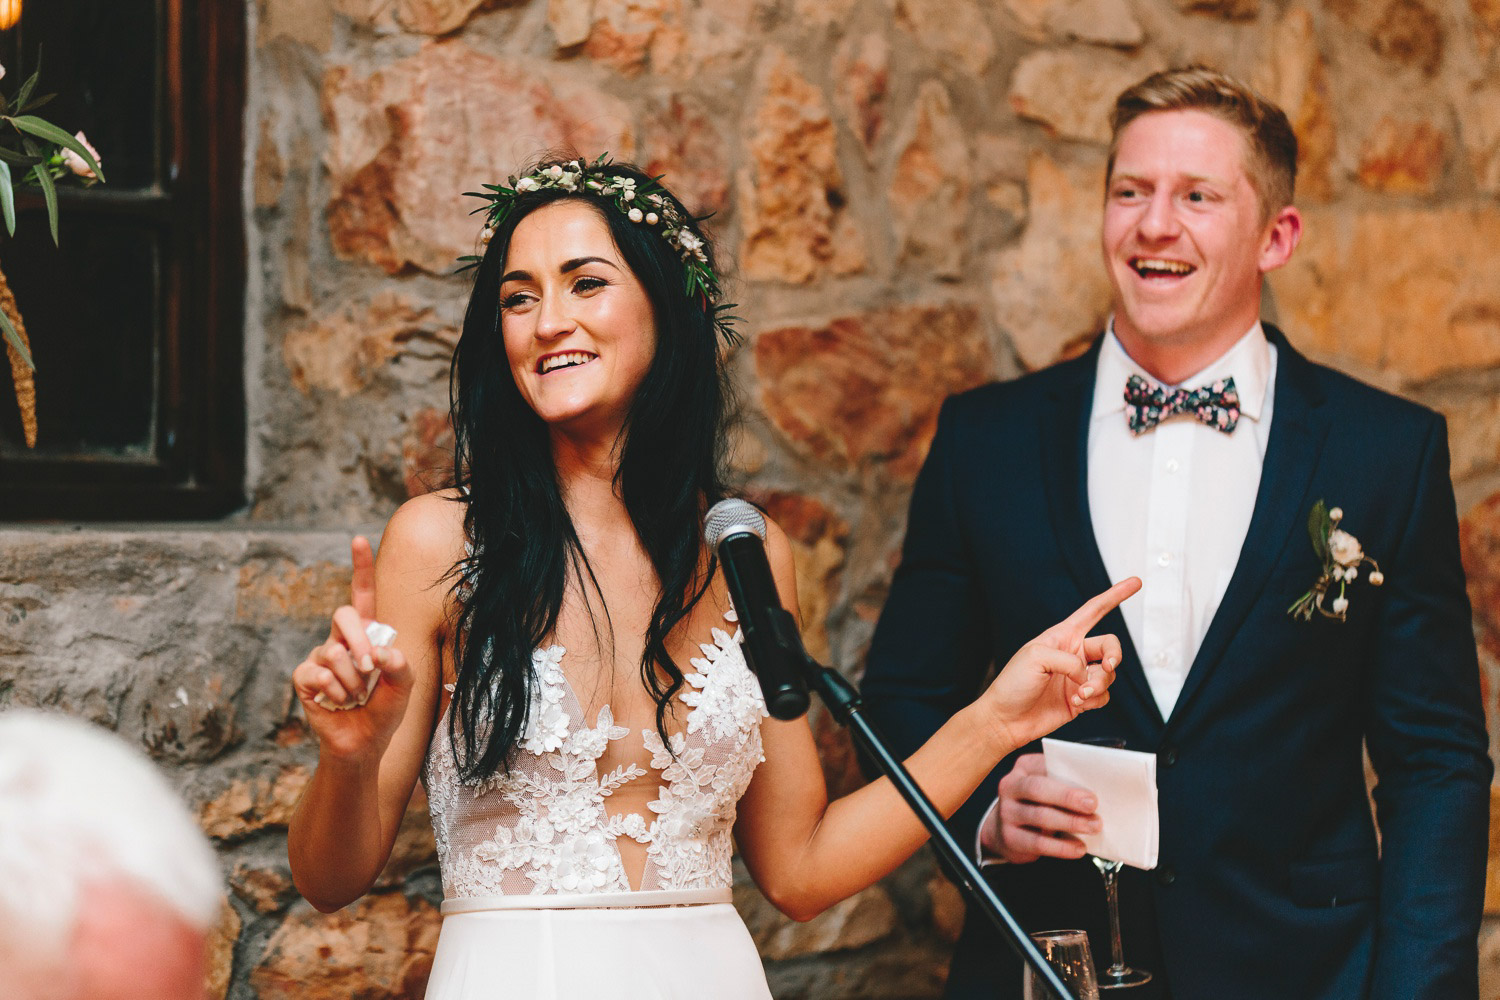 western-cape-photoghers-gen-scott-greyton-wedding-photography-charlie-ray166.jpg